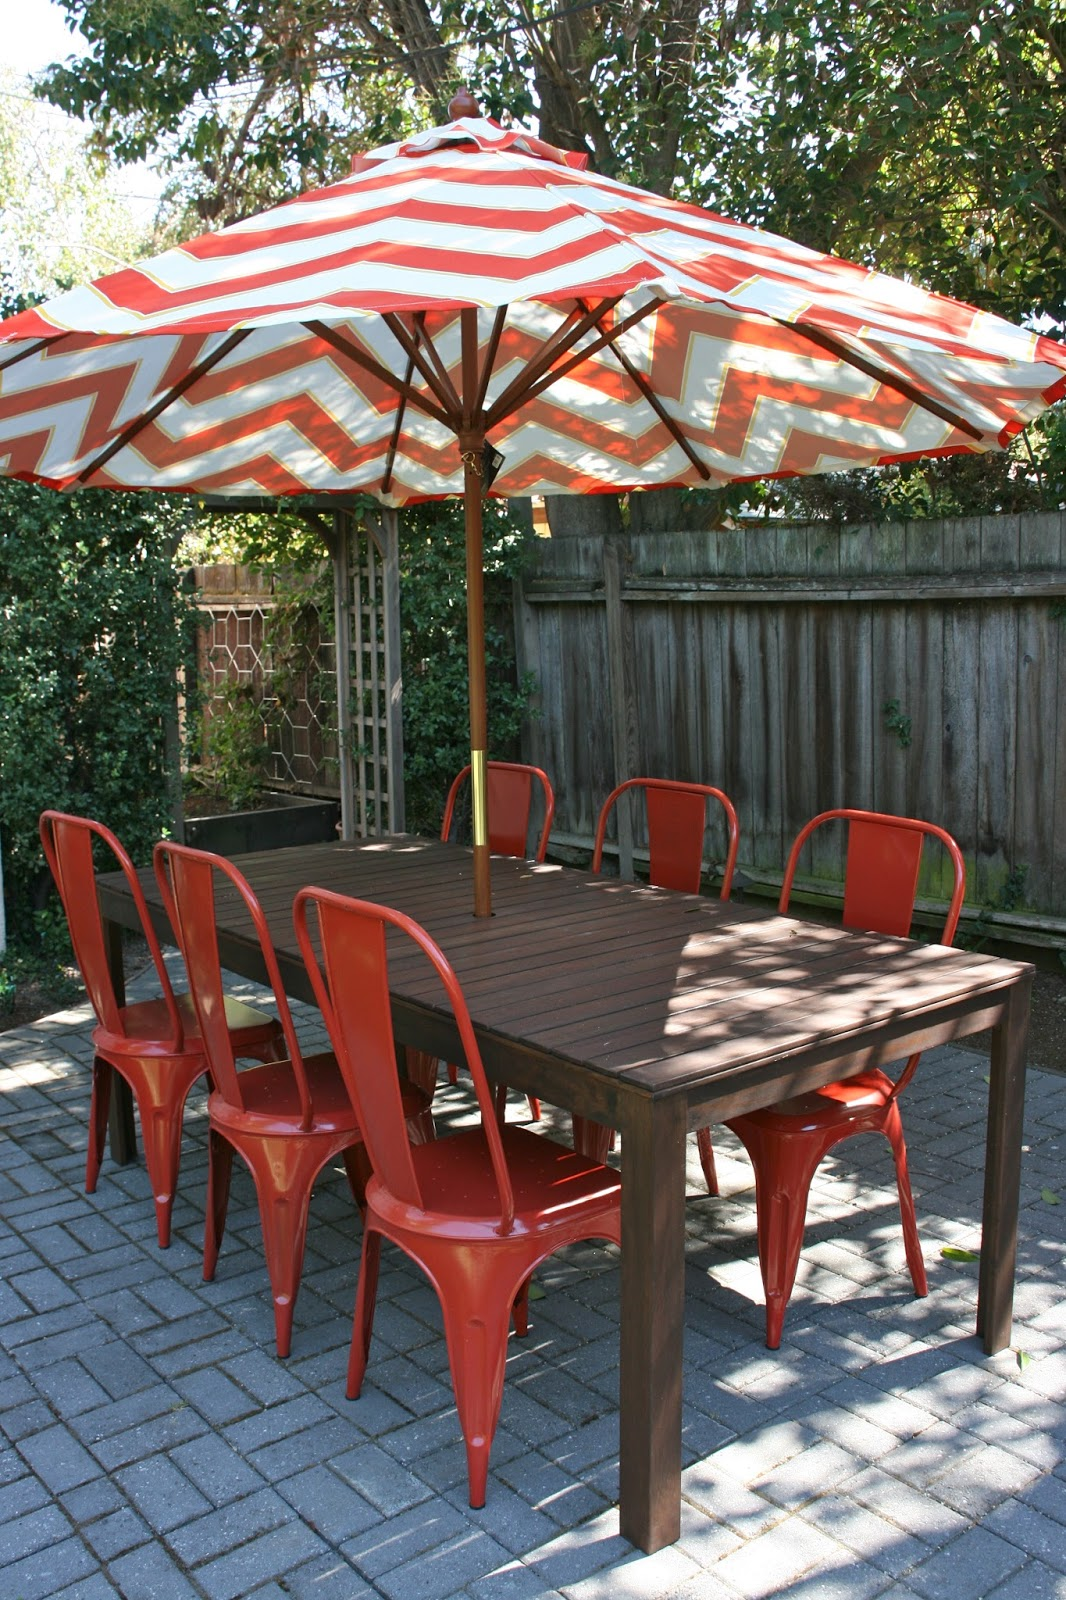 Vignette Design: New Outdoor Furniture For A Young Family